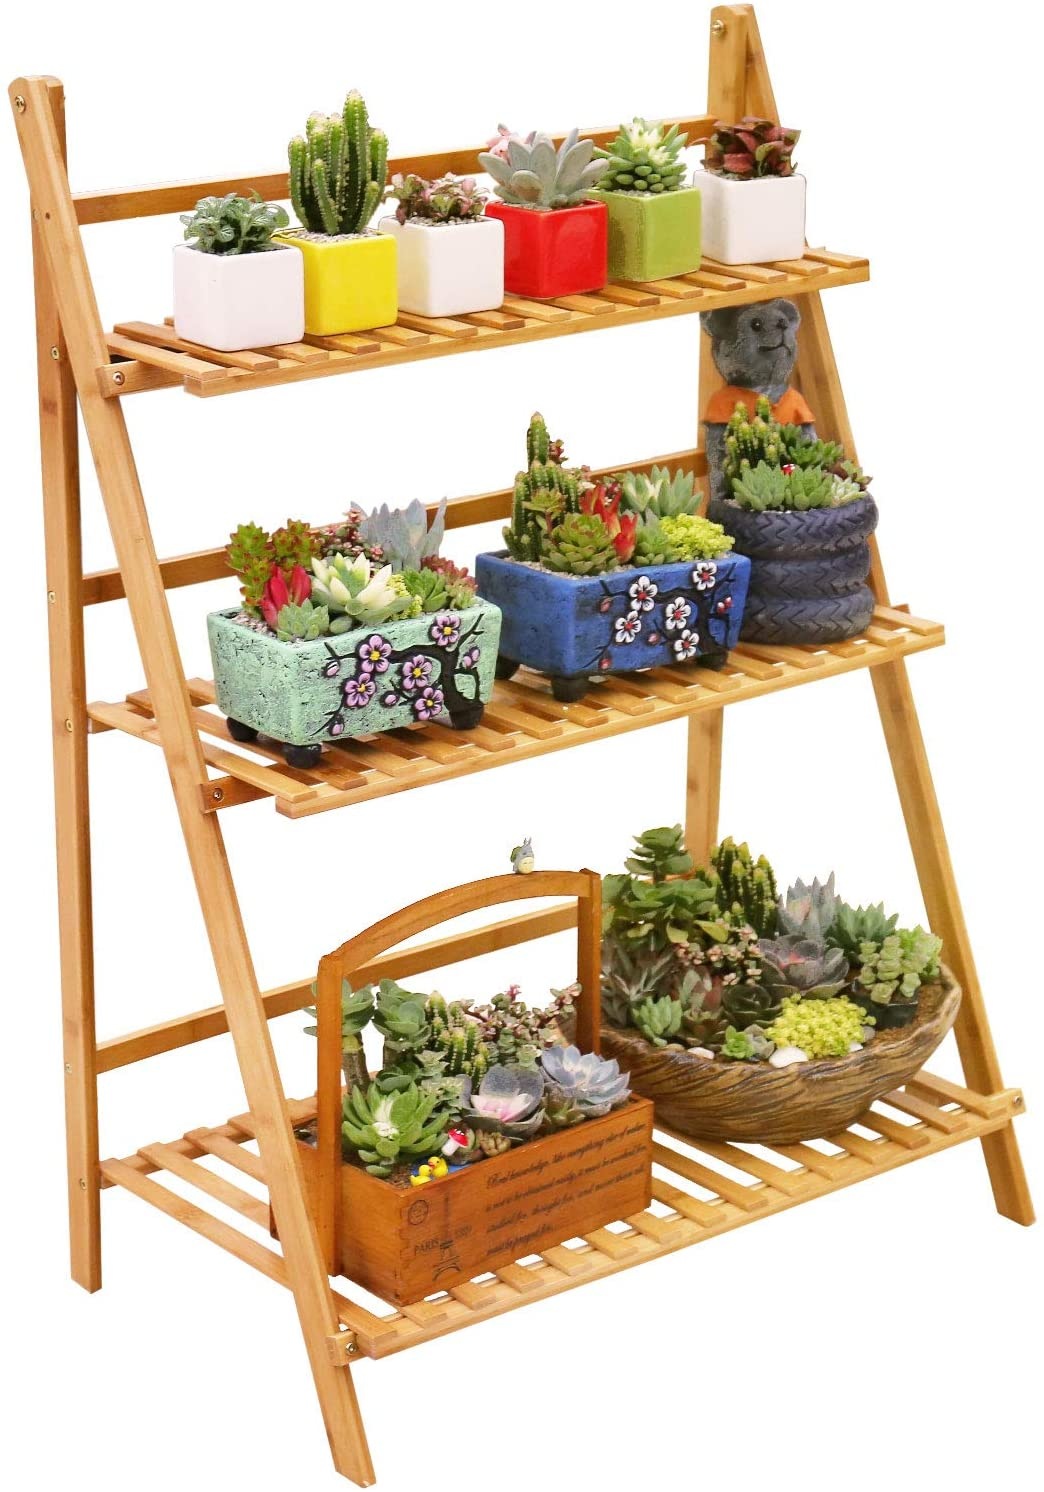 Ufine Bamboo Ladder Plant Stand 3 Displ Tier Pot Max 2021new shipping free shipping 74% OFF Flower Foldable